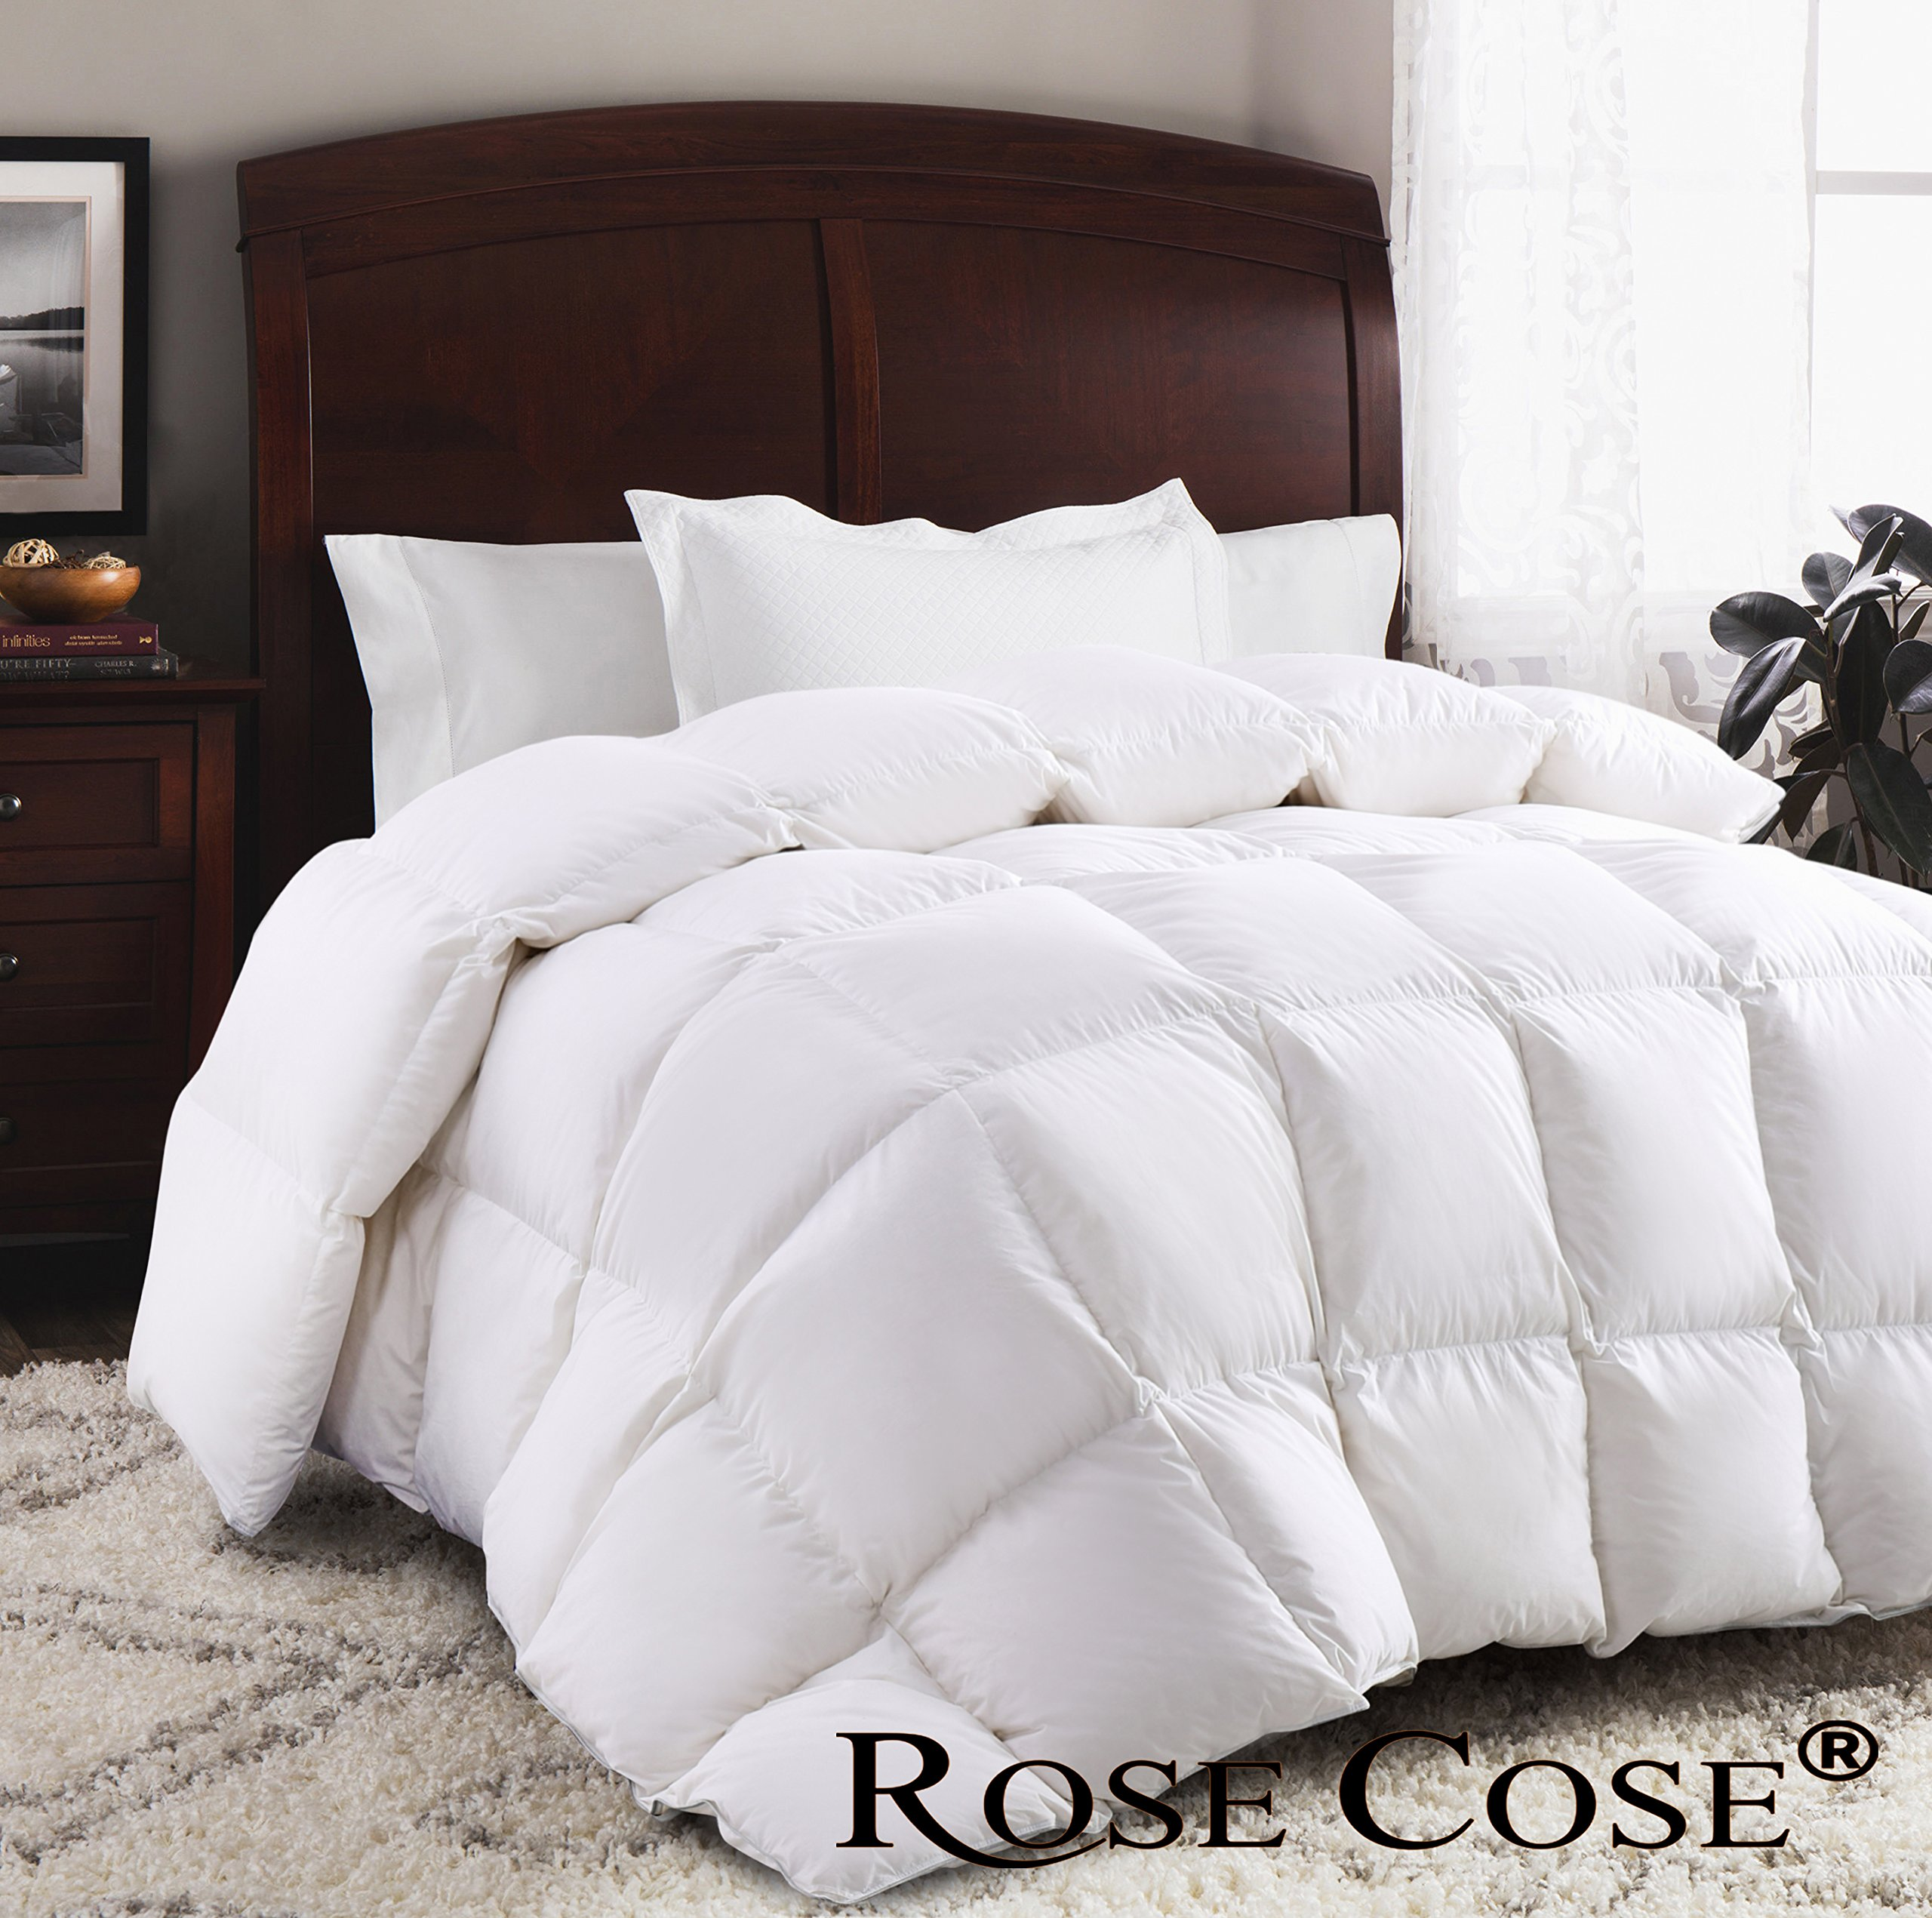 ROSECOSE Luxurious Goose Down Comforter Queen Duvet Insert All Seasons Lightweight Solid White Hypo-allergenic 1200 Thread Count 750+ Fill Power 100% Cotton Shell Down Proof With Tabs (Queen, White)